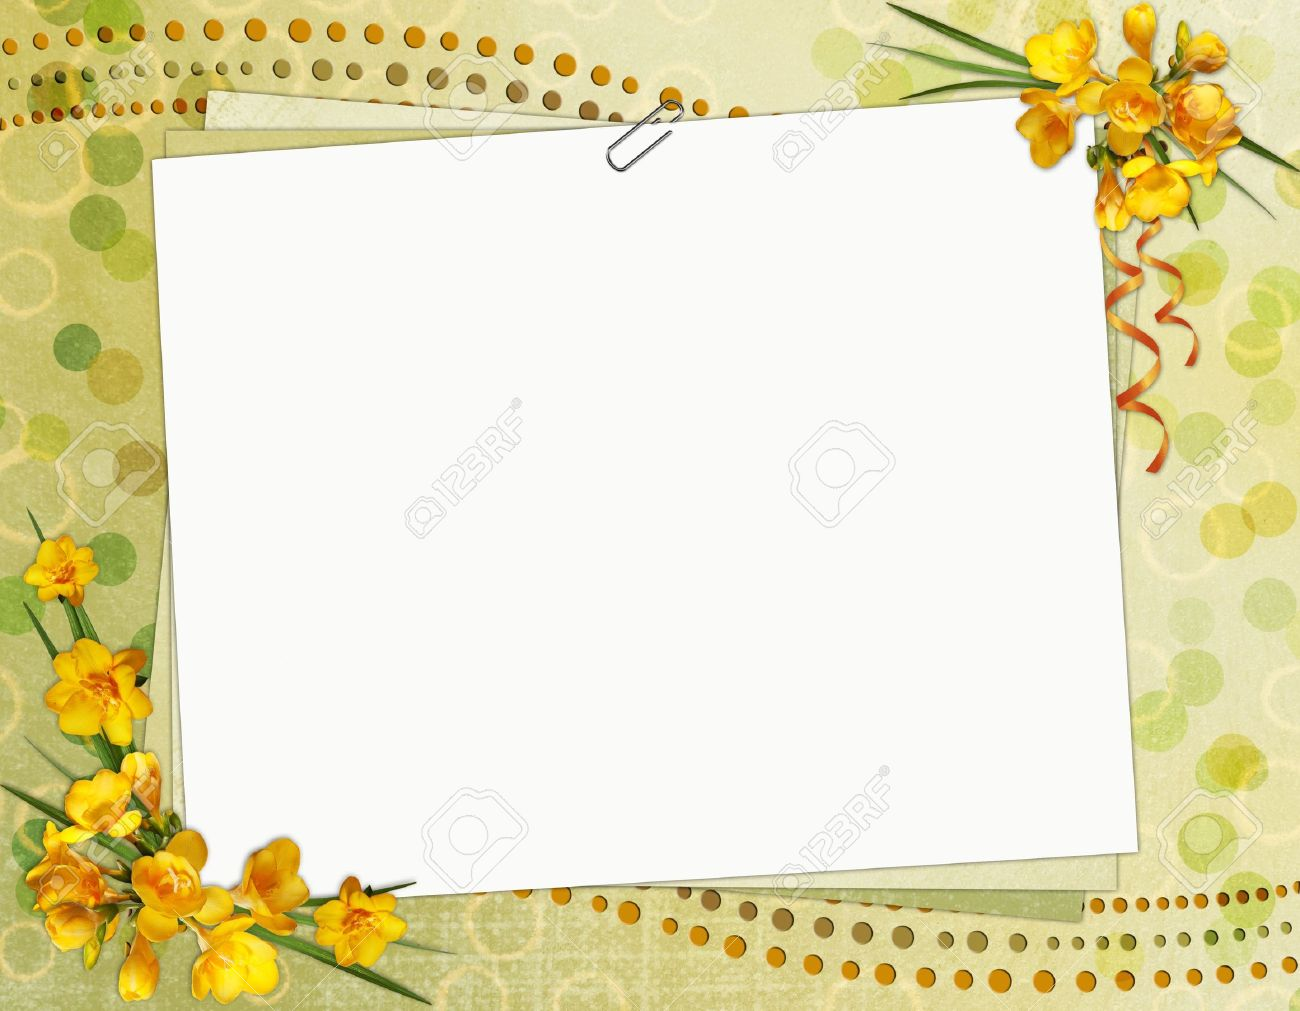 Greeting card border demirediffusion greeting card stock photo picture and royalty free image image m4hsunfo